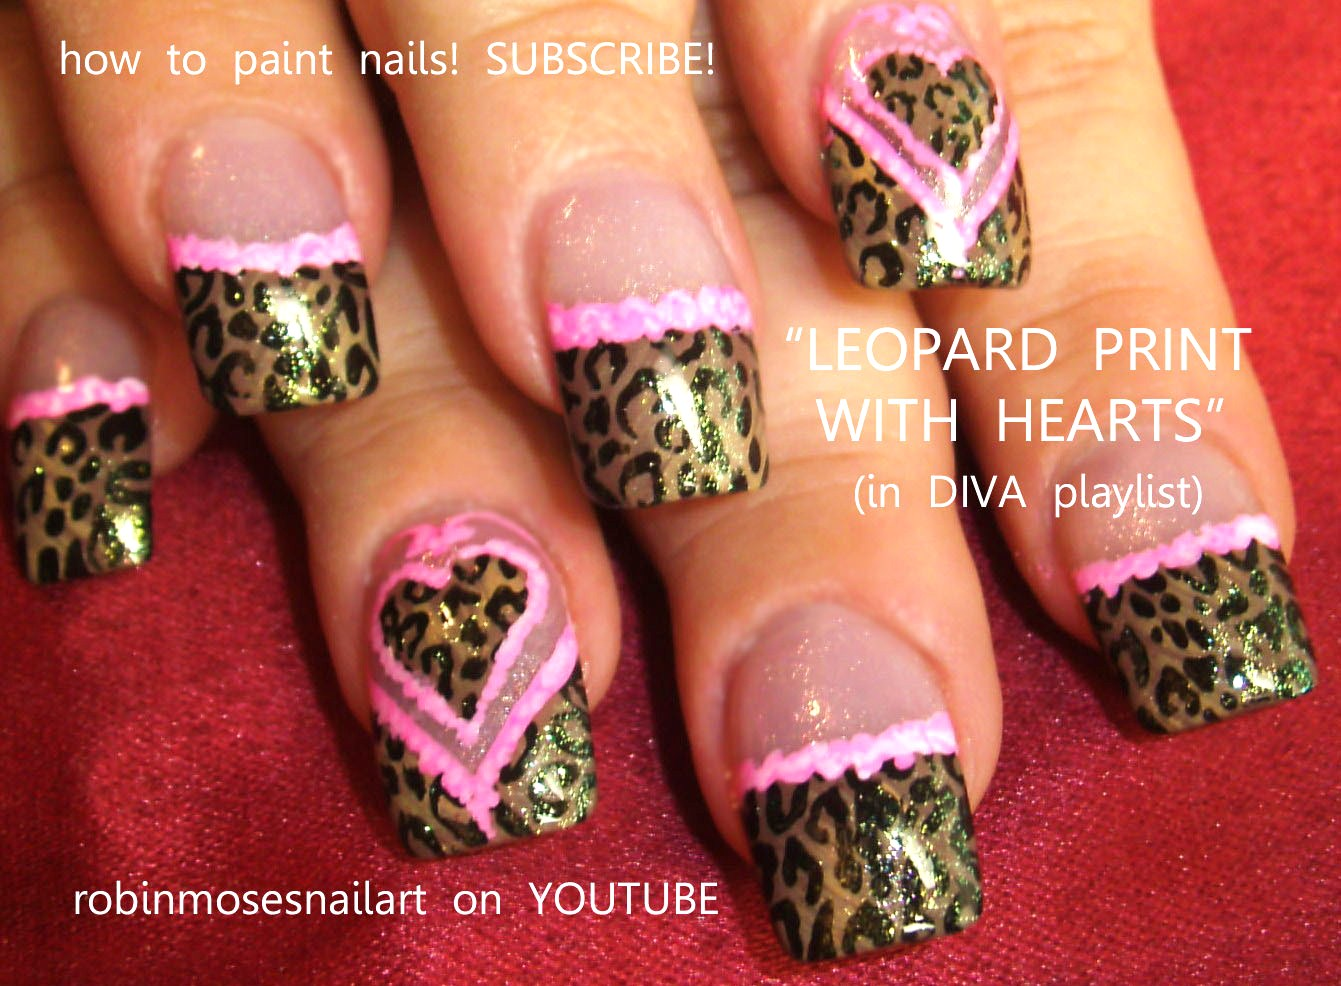 The Astonishing Stiletto nail cheetah print designs Image